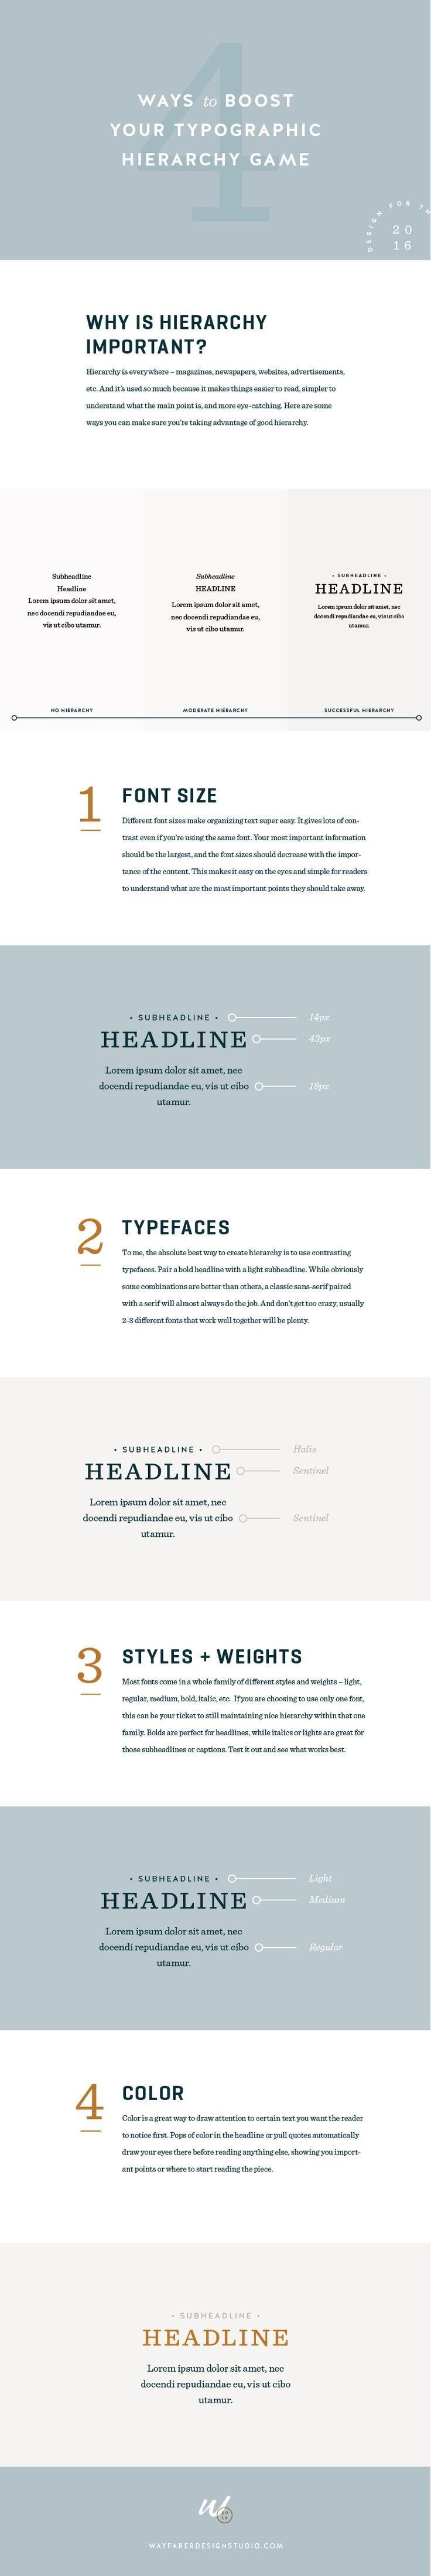 4 Ways to Boost Your Typographic Hierarchy Game #typography #design #graphicdesign #blogger #blogging #advice #tips #blog